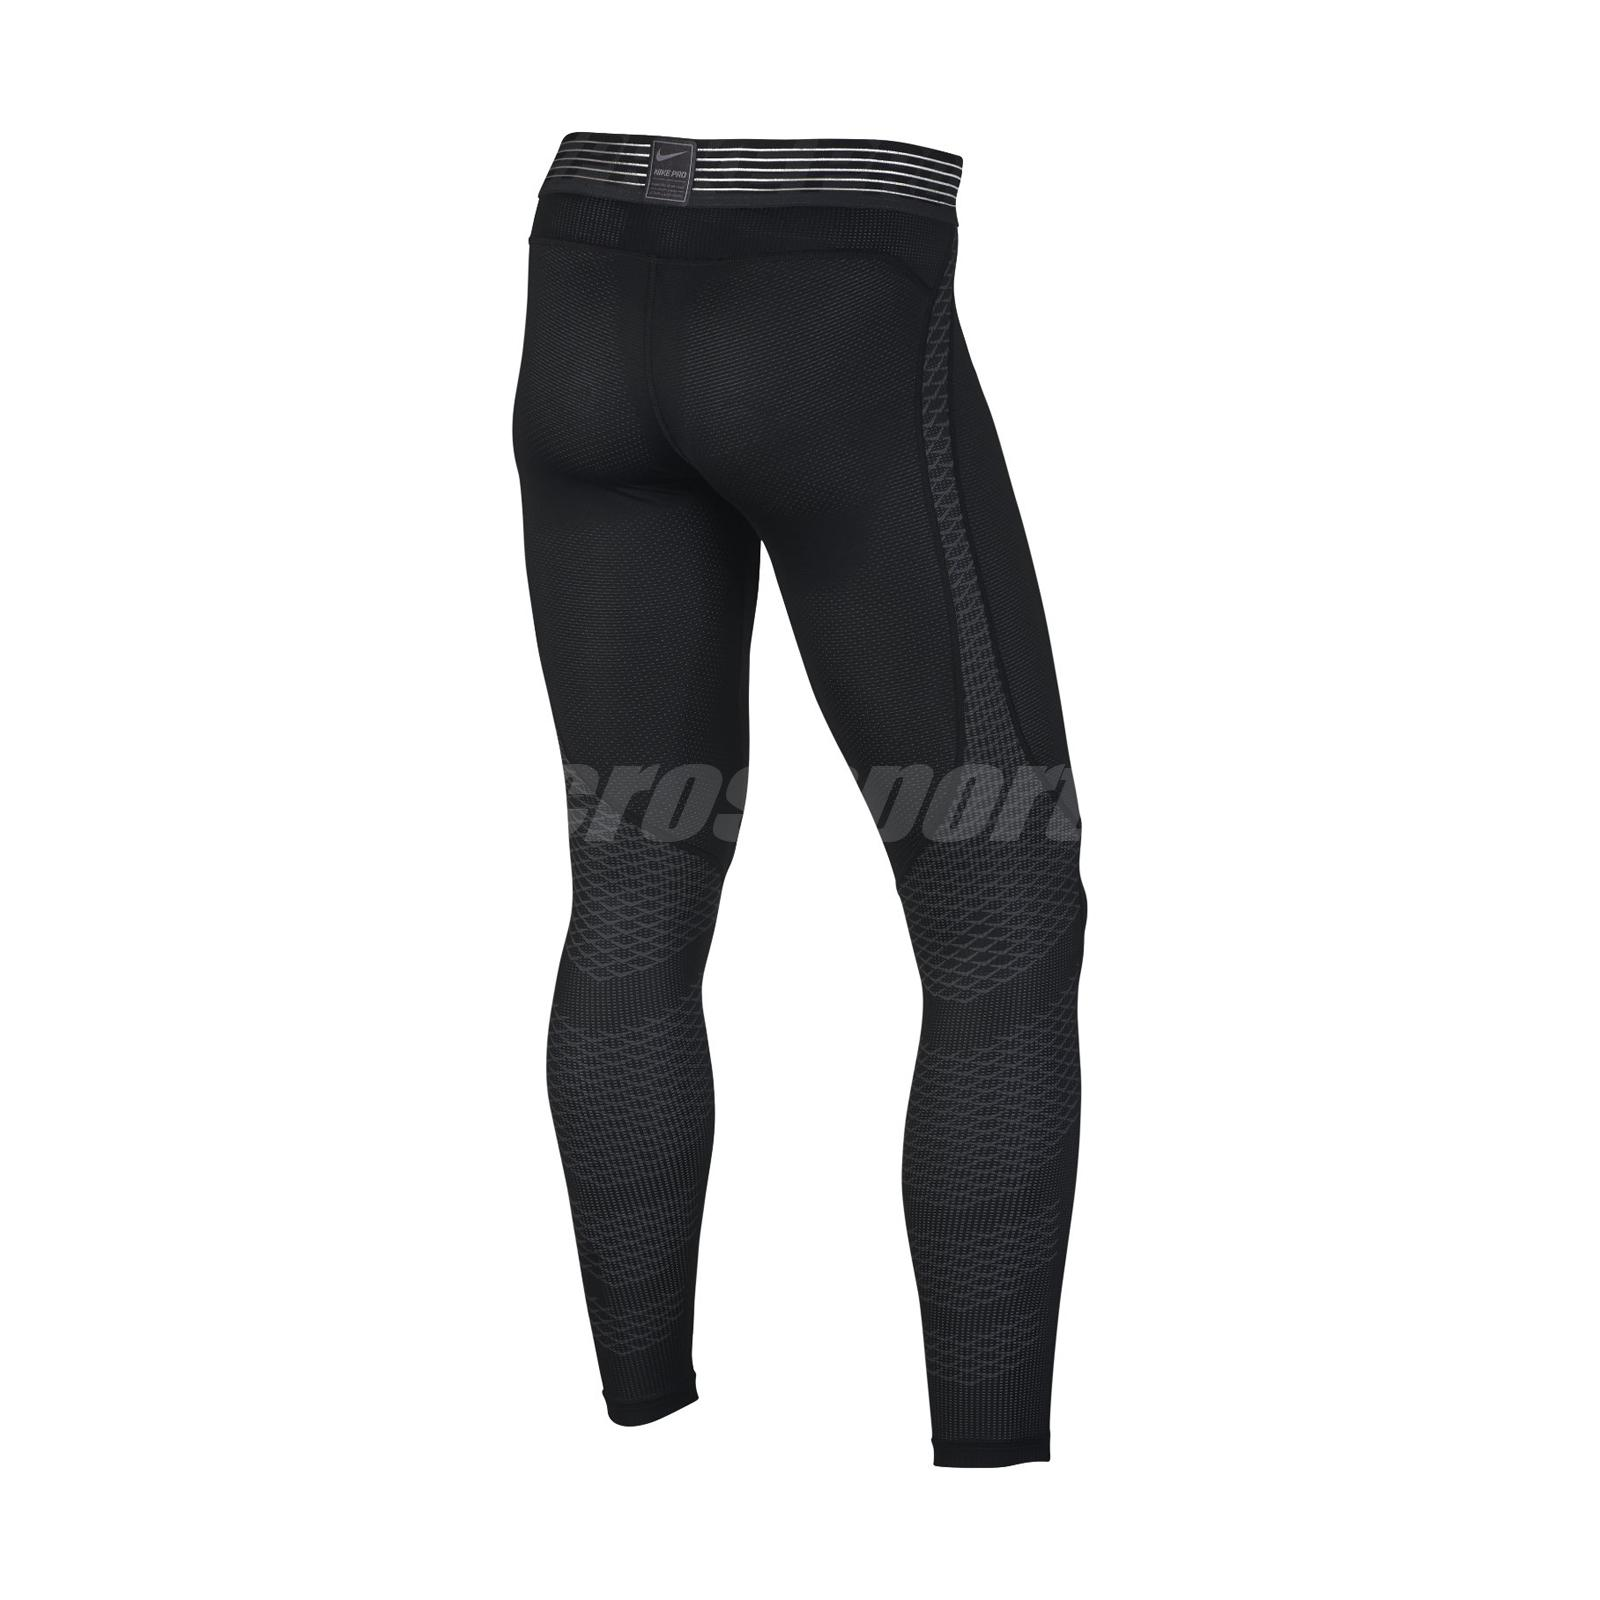 f9d053585ffa5 Nike Men Pro Hypercool Tight Leggings Black Training Sport Running ...